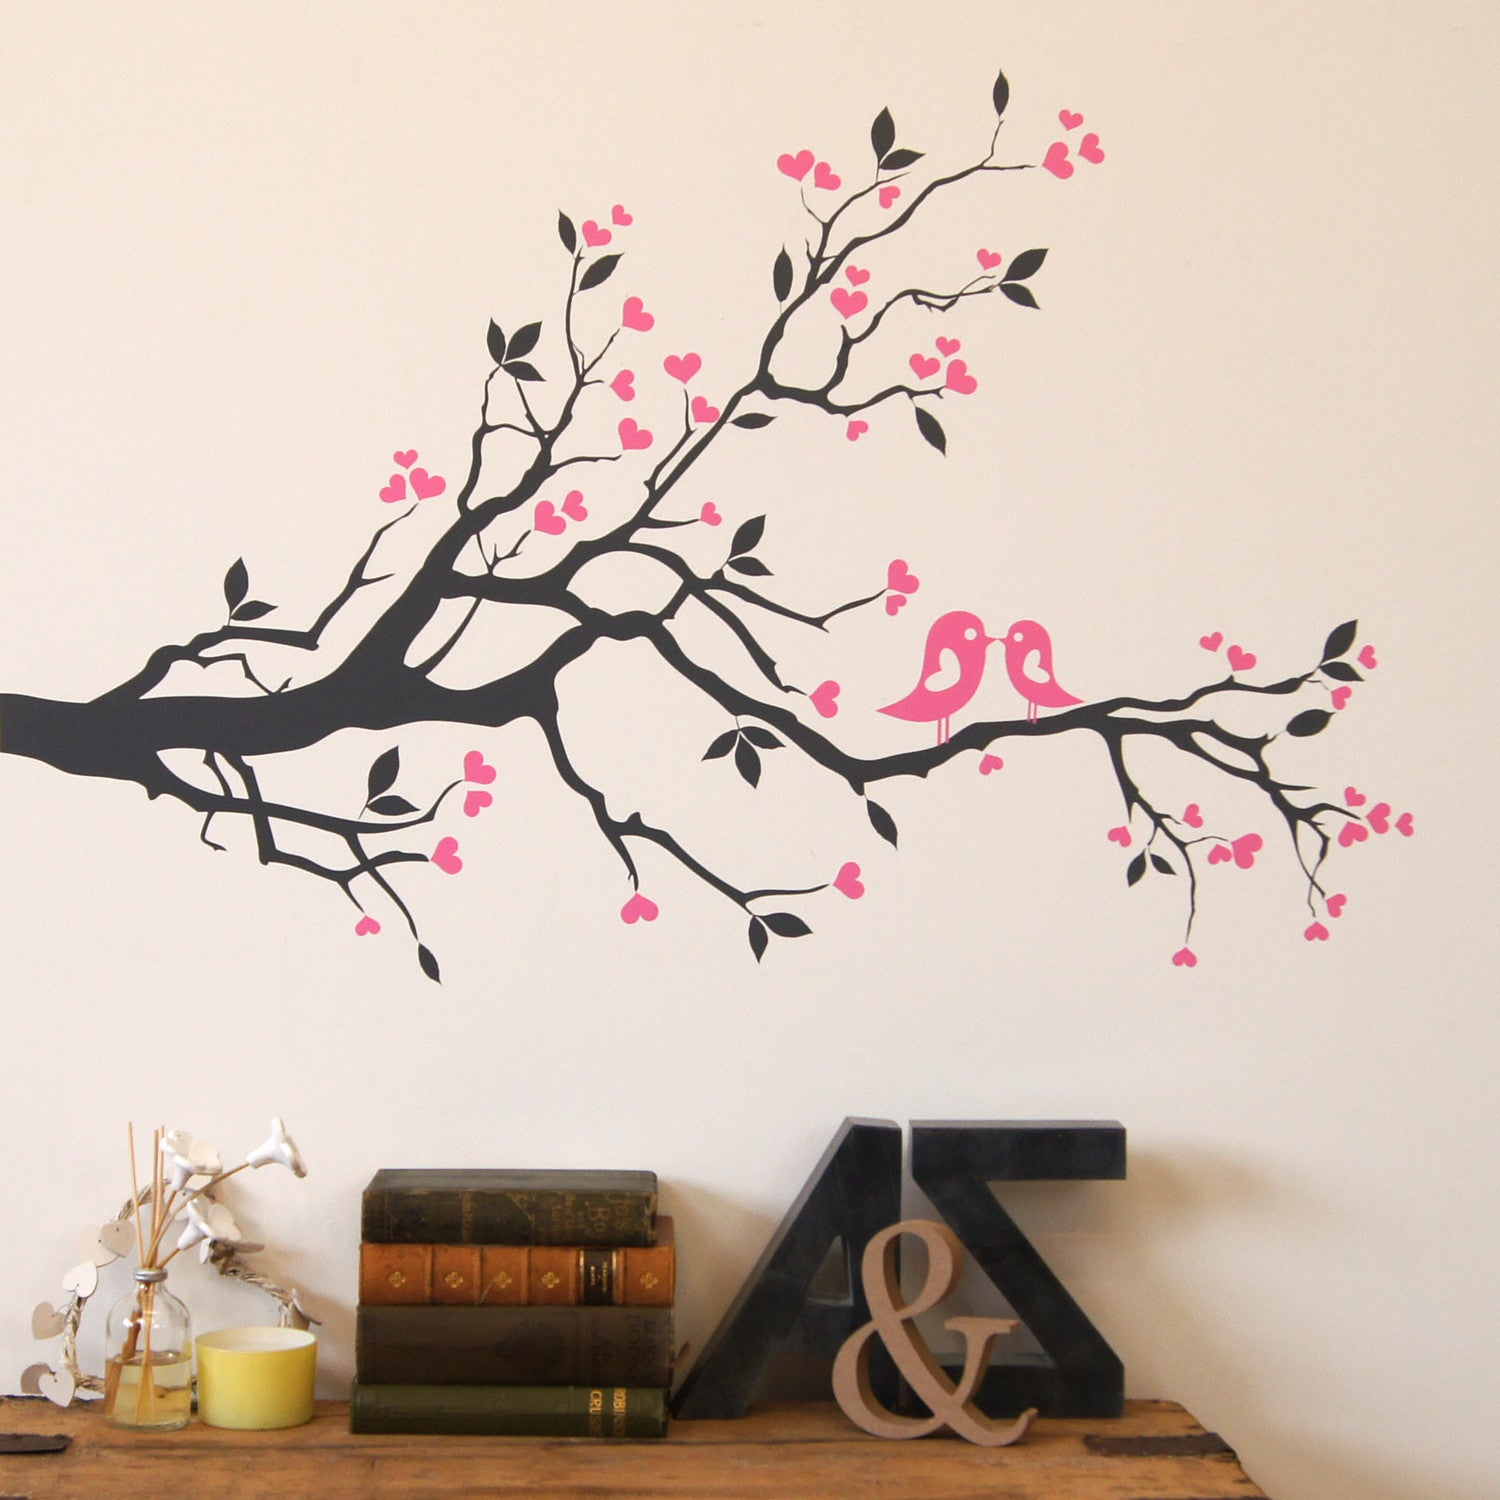 Love birds o n blossom branch - darg grey branch with pink birds